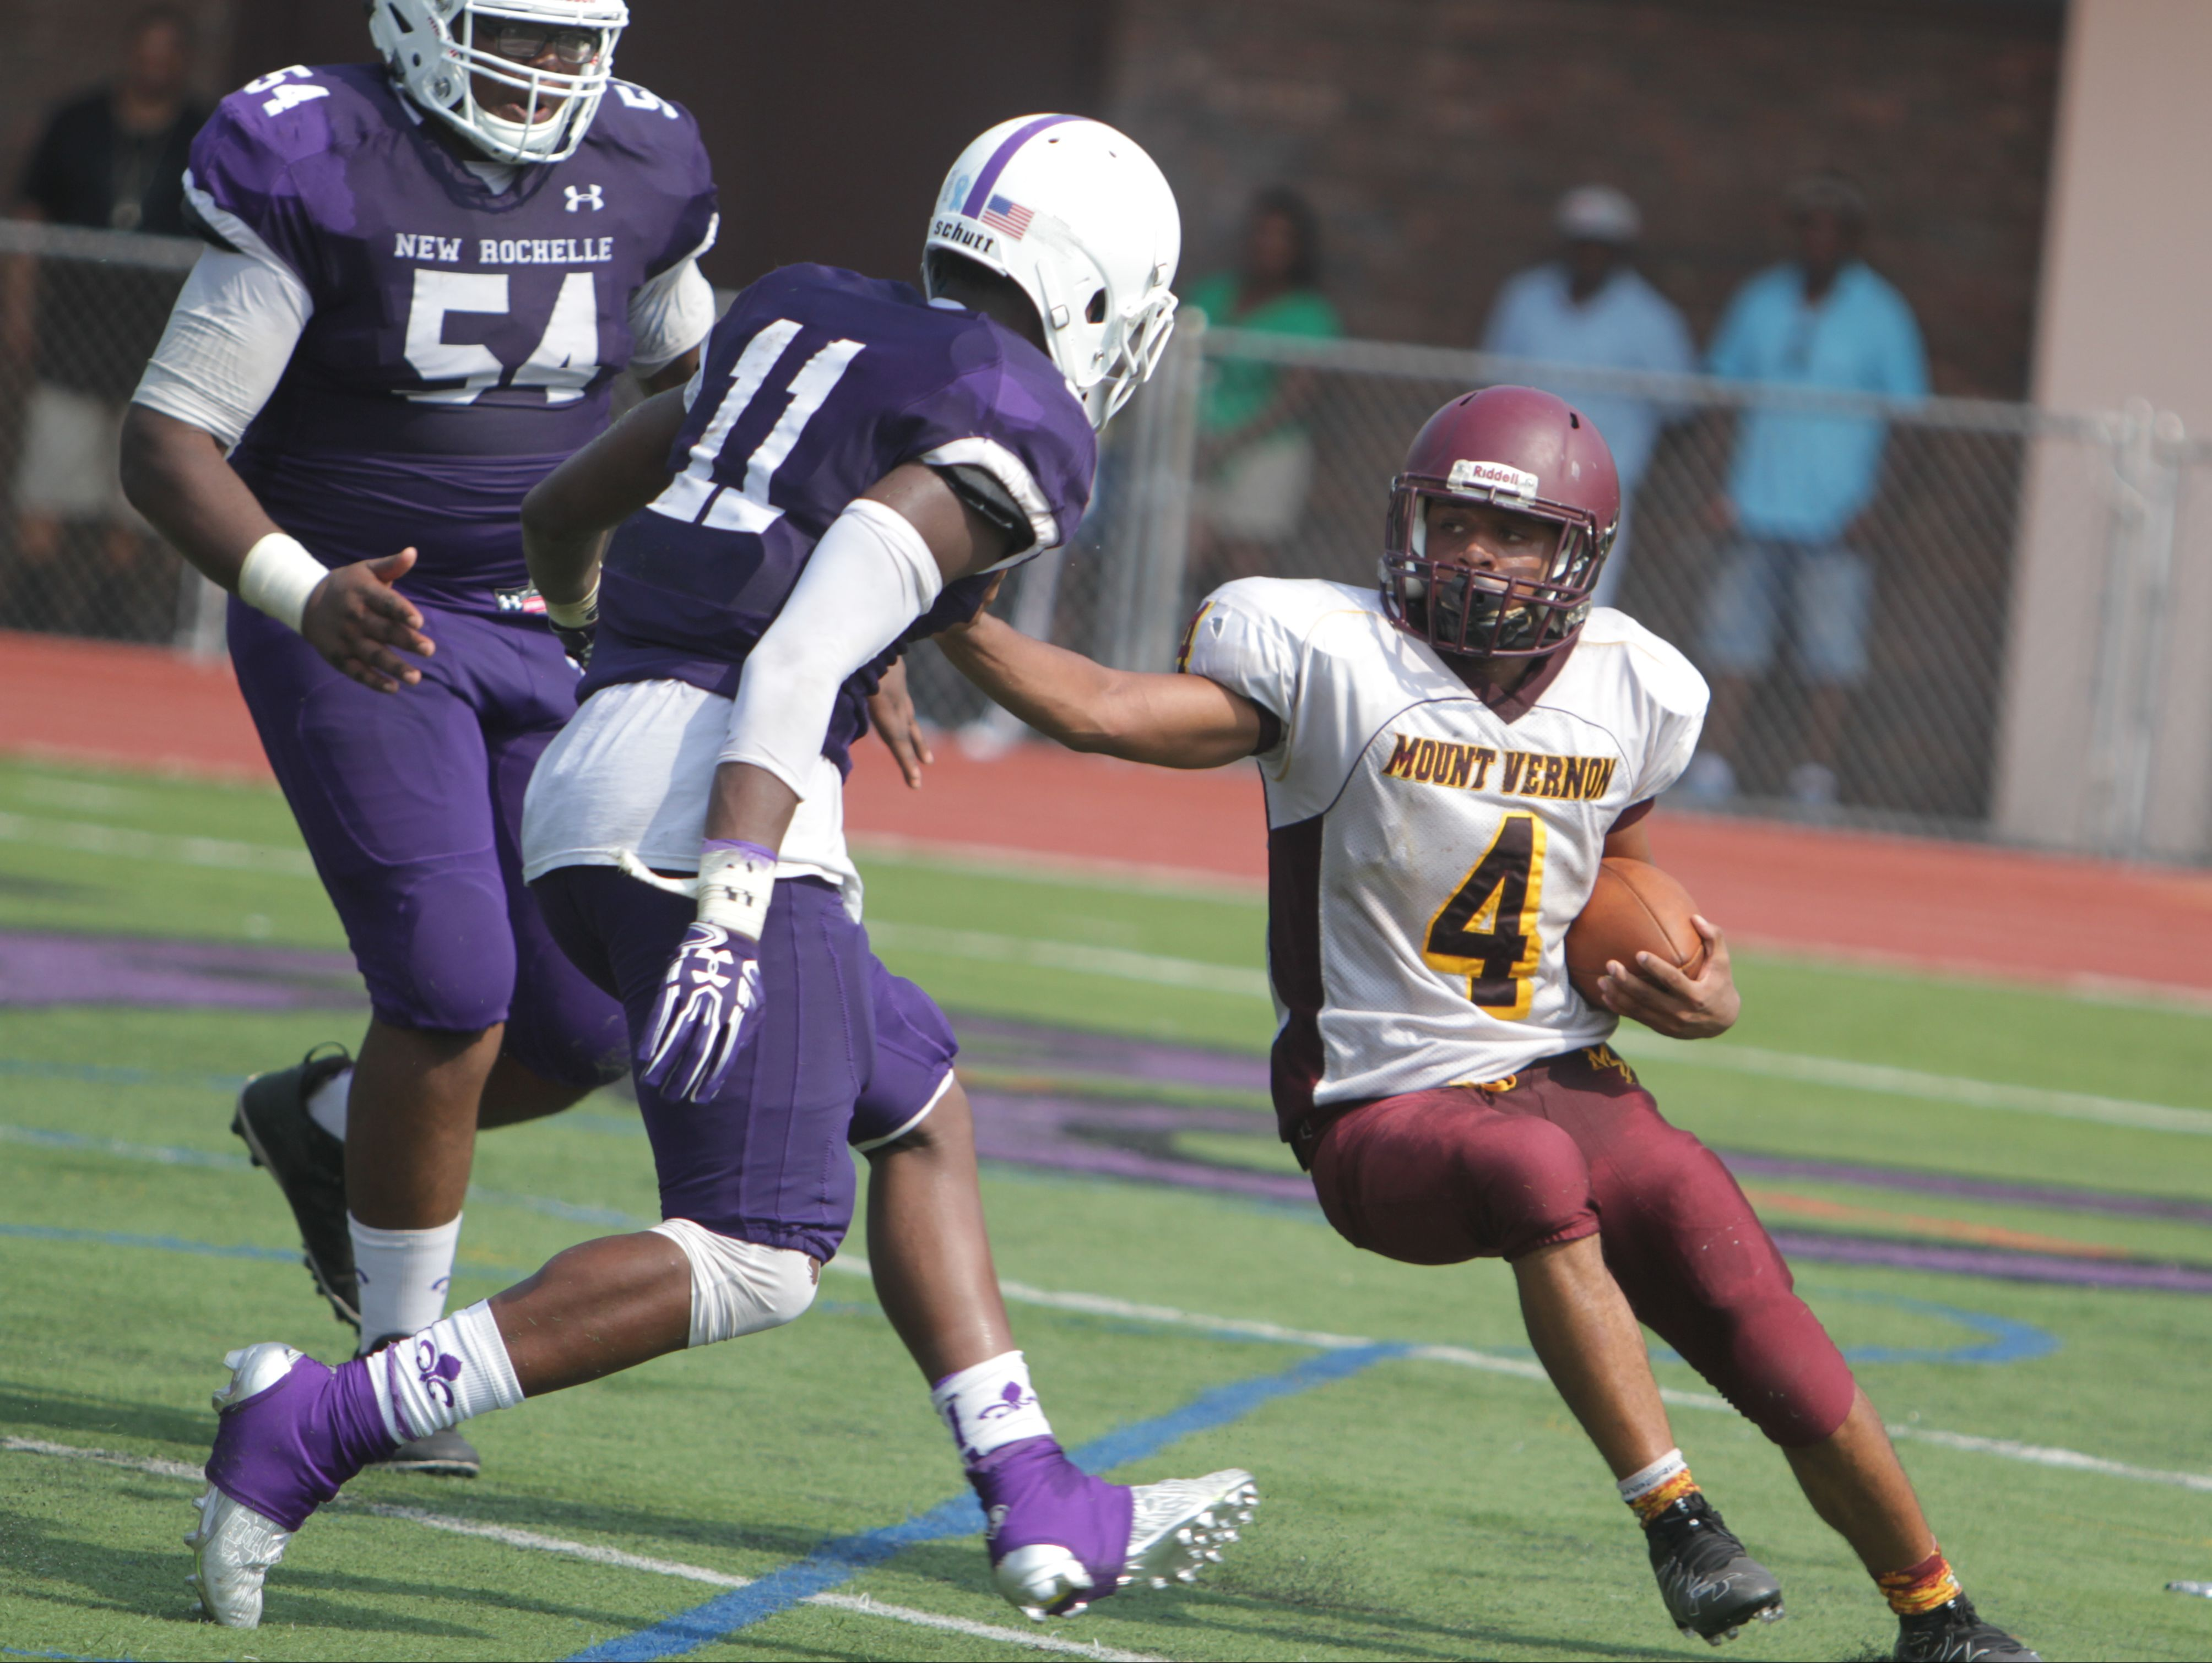 Action during a Section 1, Class AA football game between New Rochelle and Mount Vernon at New Rochelle High School on Sept. 10th, 2016. New Rochelle won 40-6.